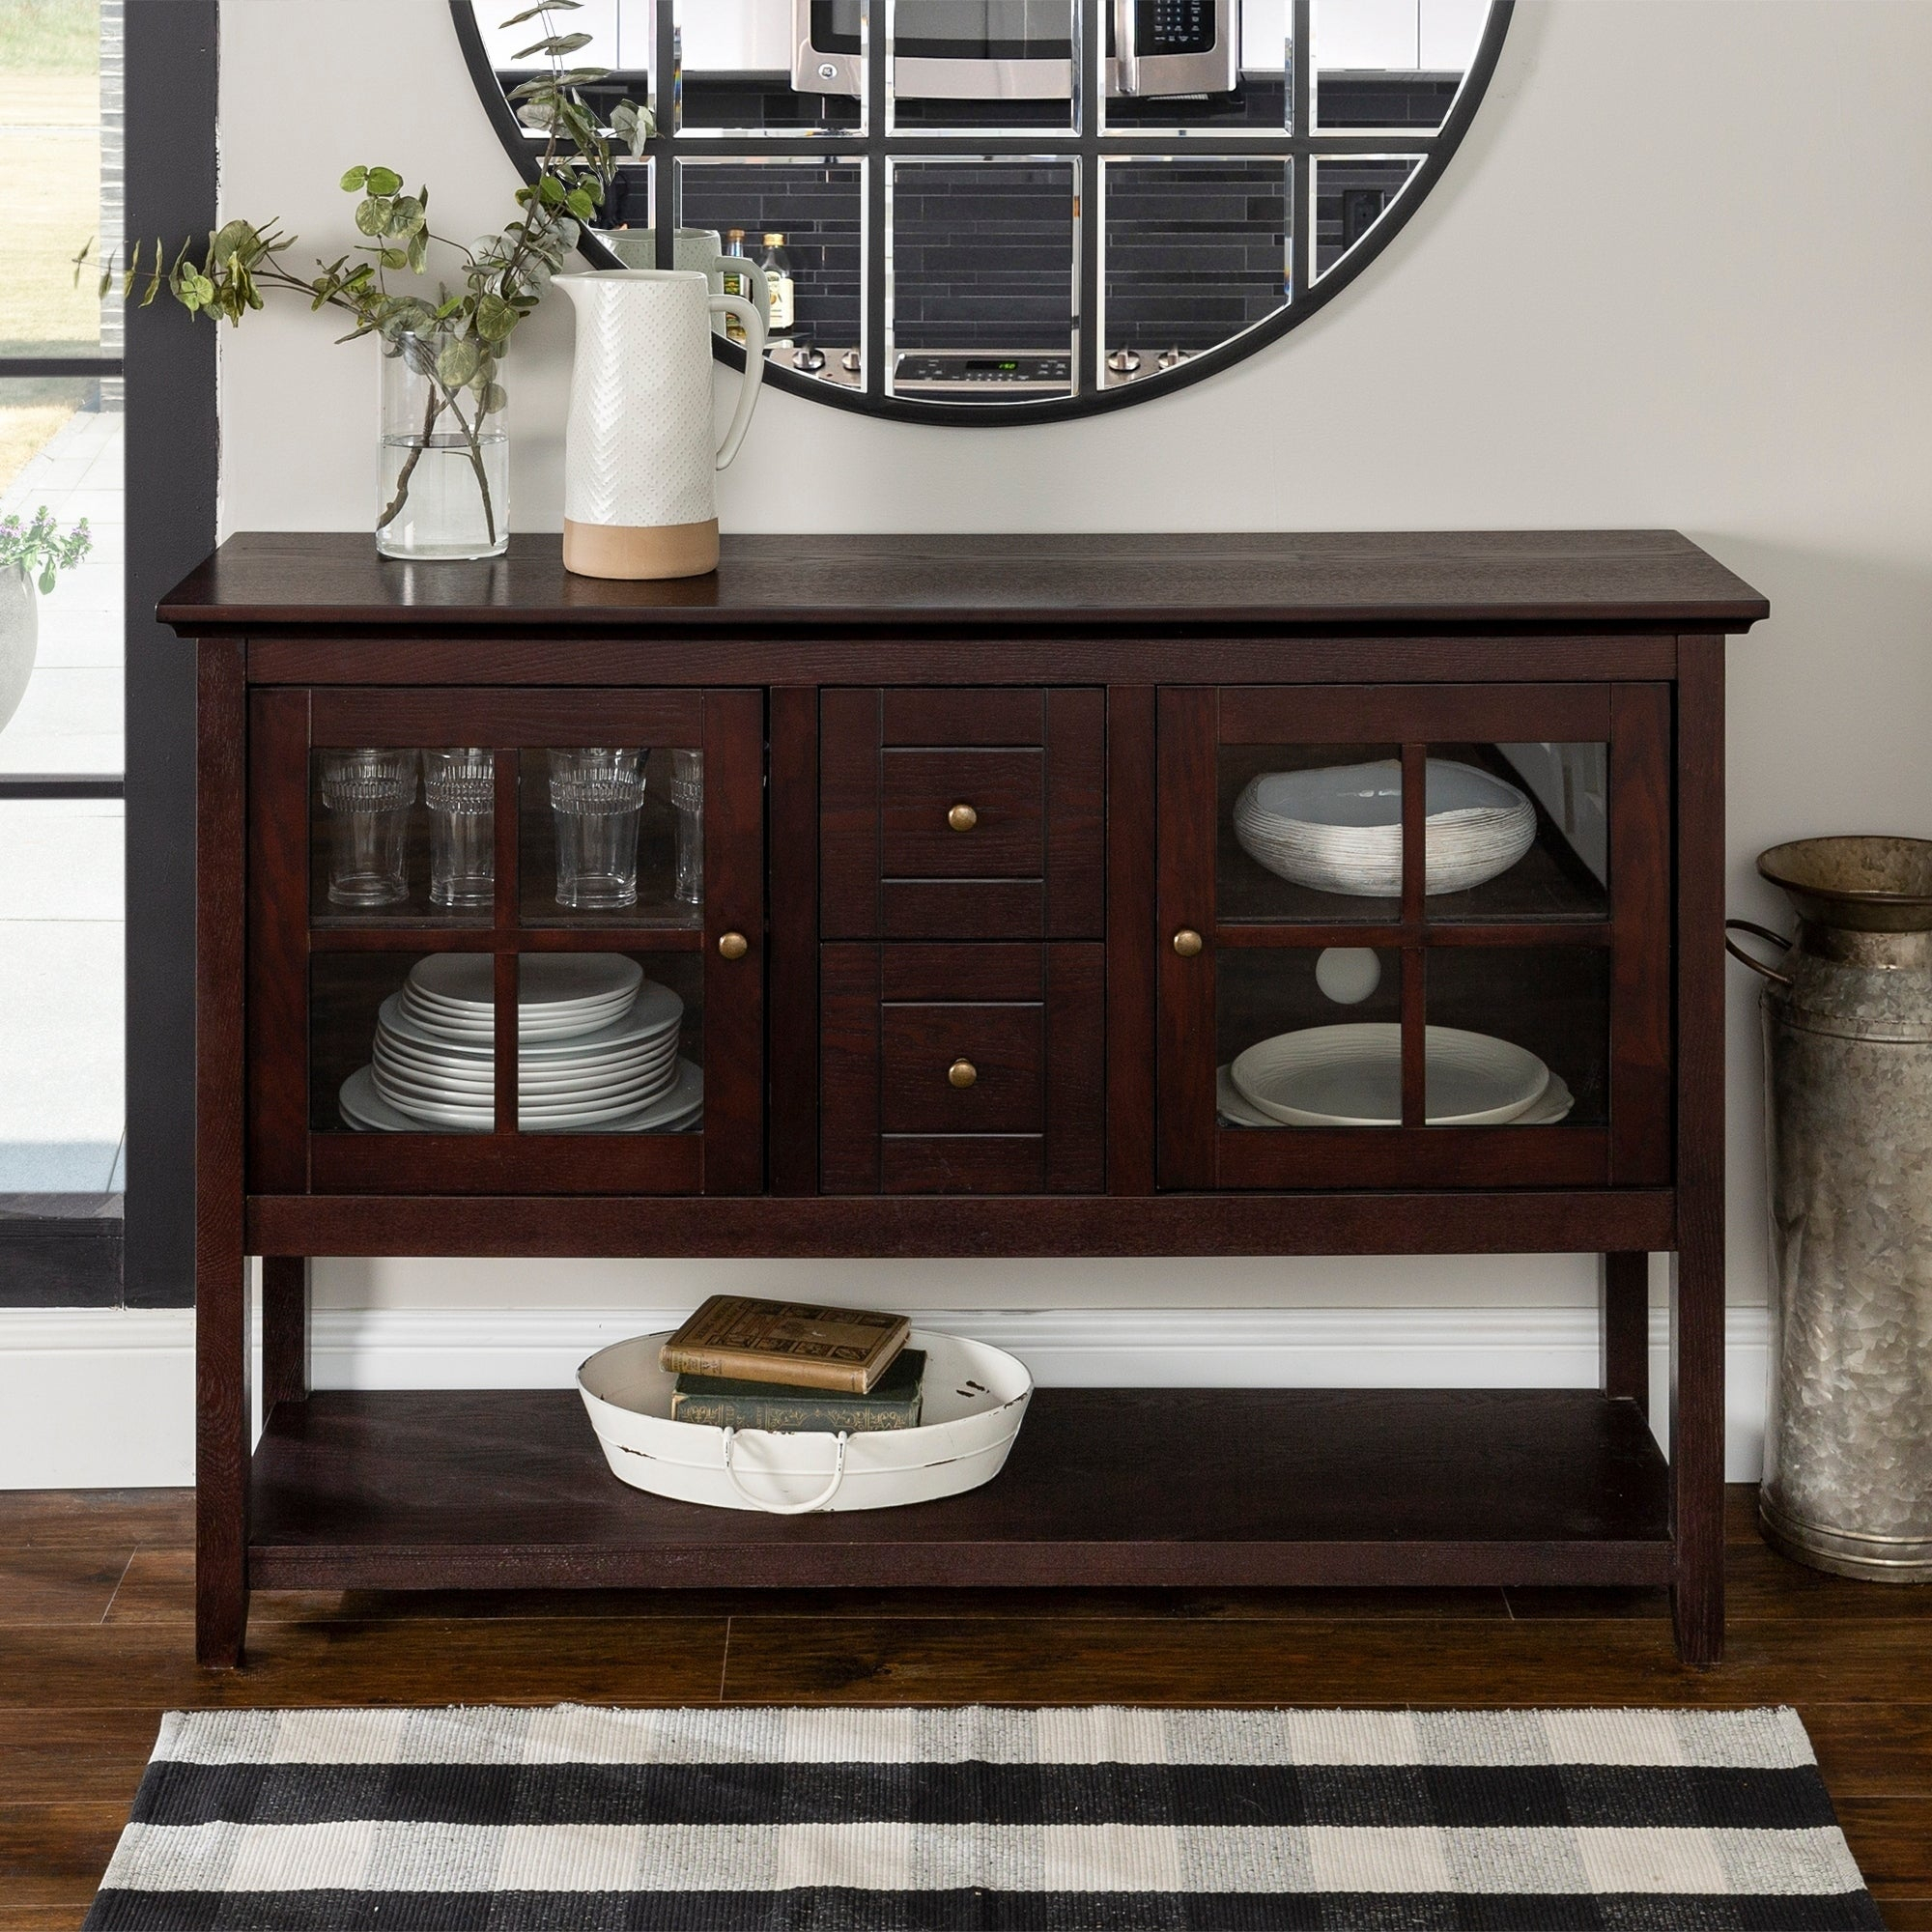 Middlebrook Designs 52 Inch Buffet Cabinet, Espresso, Tv Stand Console, Entertainment Center – 54 X 16 X 35h Inside Espresso Wood Multi Use Buffets (View 5 of 30)